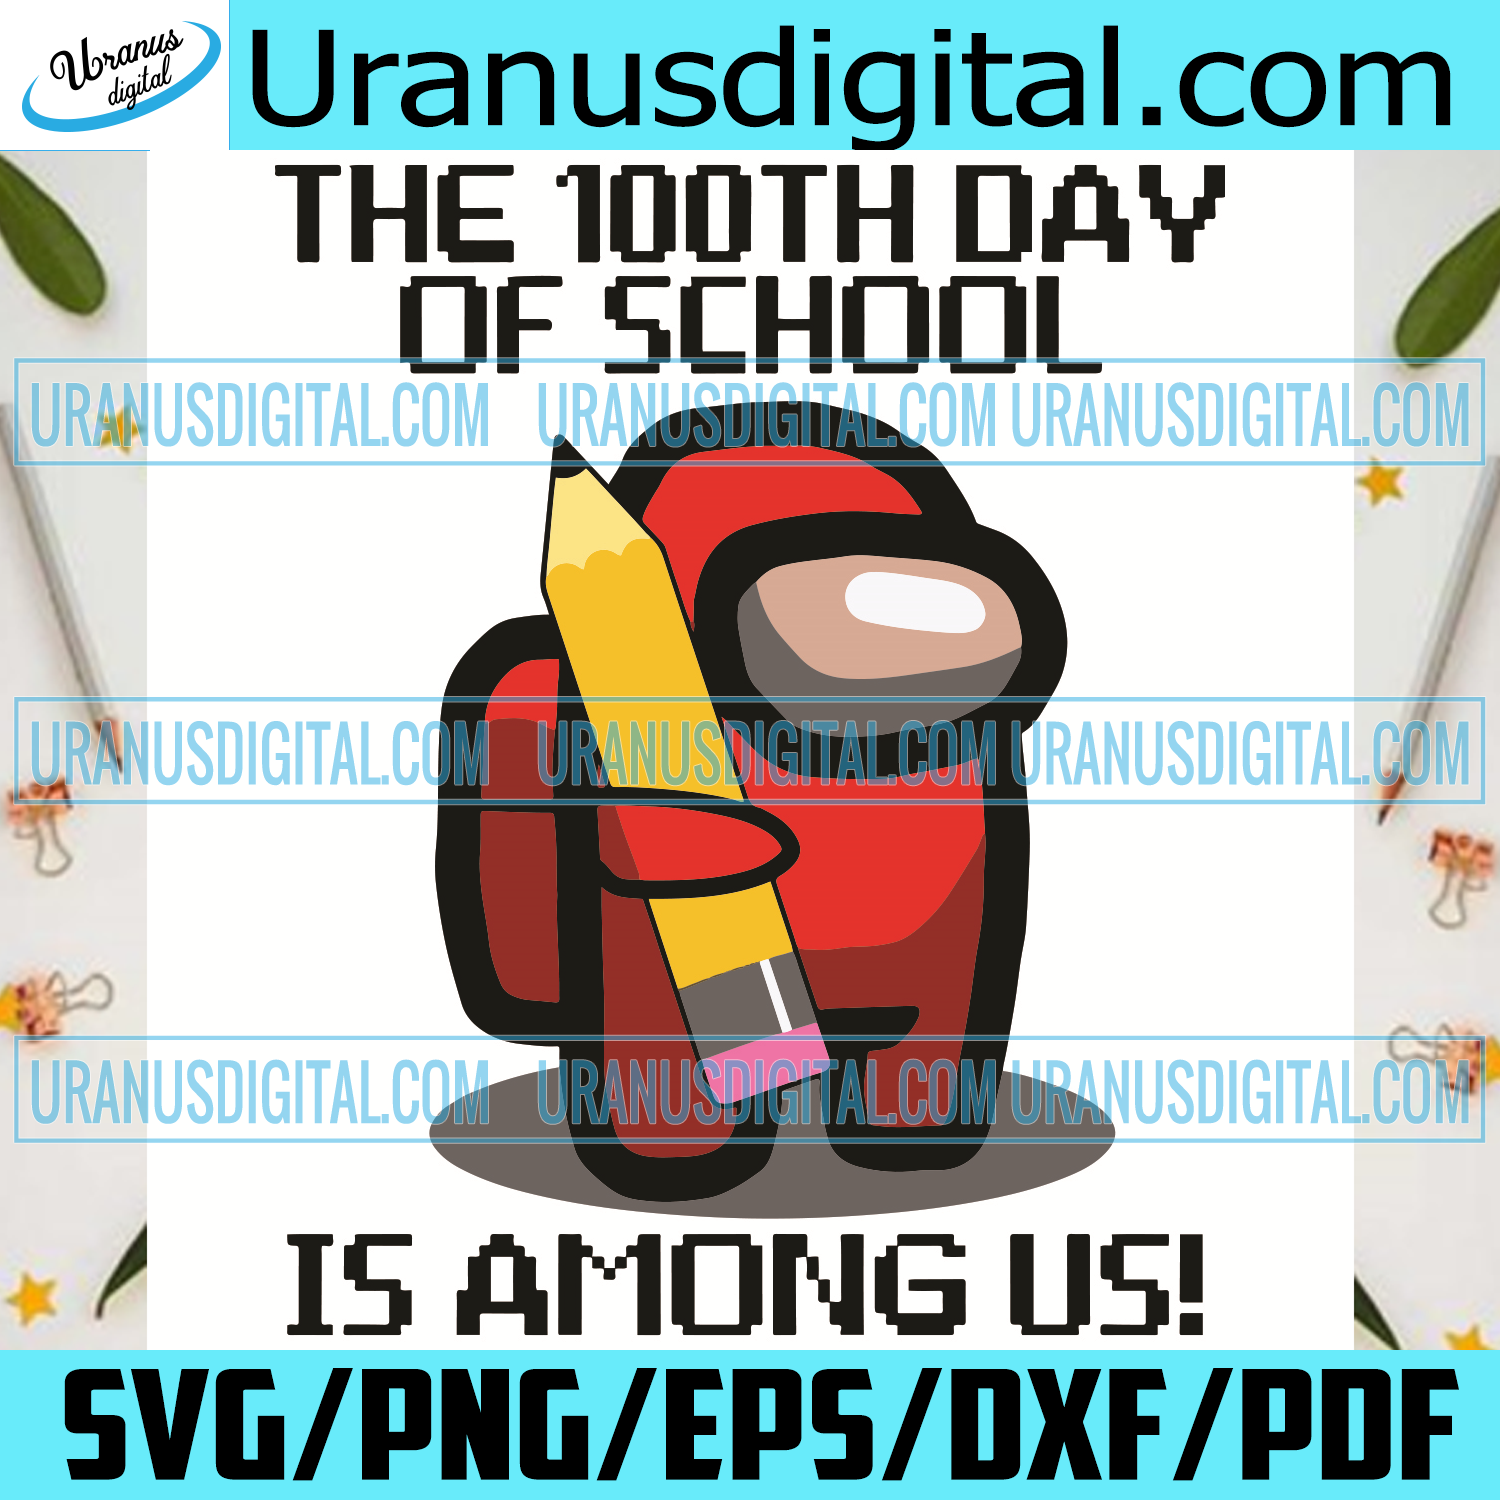 100th Day of School Among Us Svg, Trending Svg, 100 Days Of School Svg, Among Us Svg, Impostors Svg, Crewmate Svg, Game Svg, School Svg, Student Svg, Quarantined Svg, 100th Day Of School Svg, School Gifts Svg